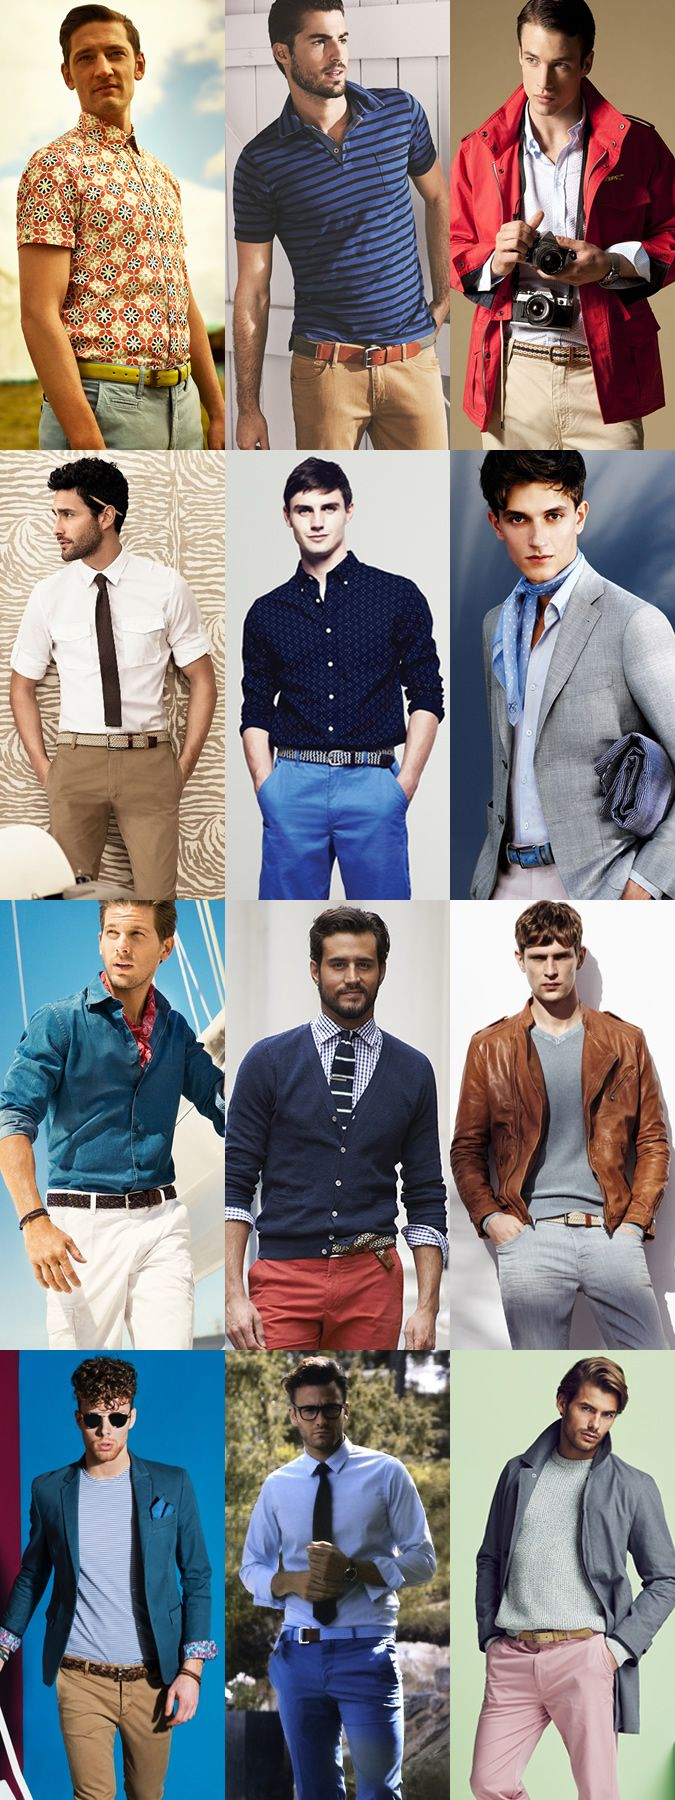 CASUAL BELTS Men's Casual Belt Outfit Inspiration Lookbook